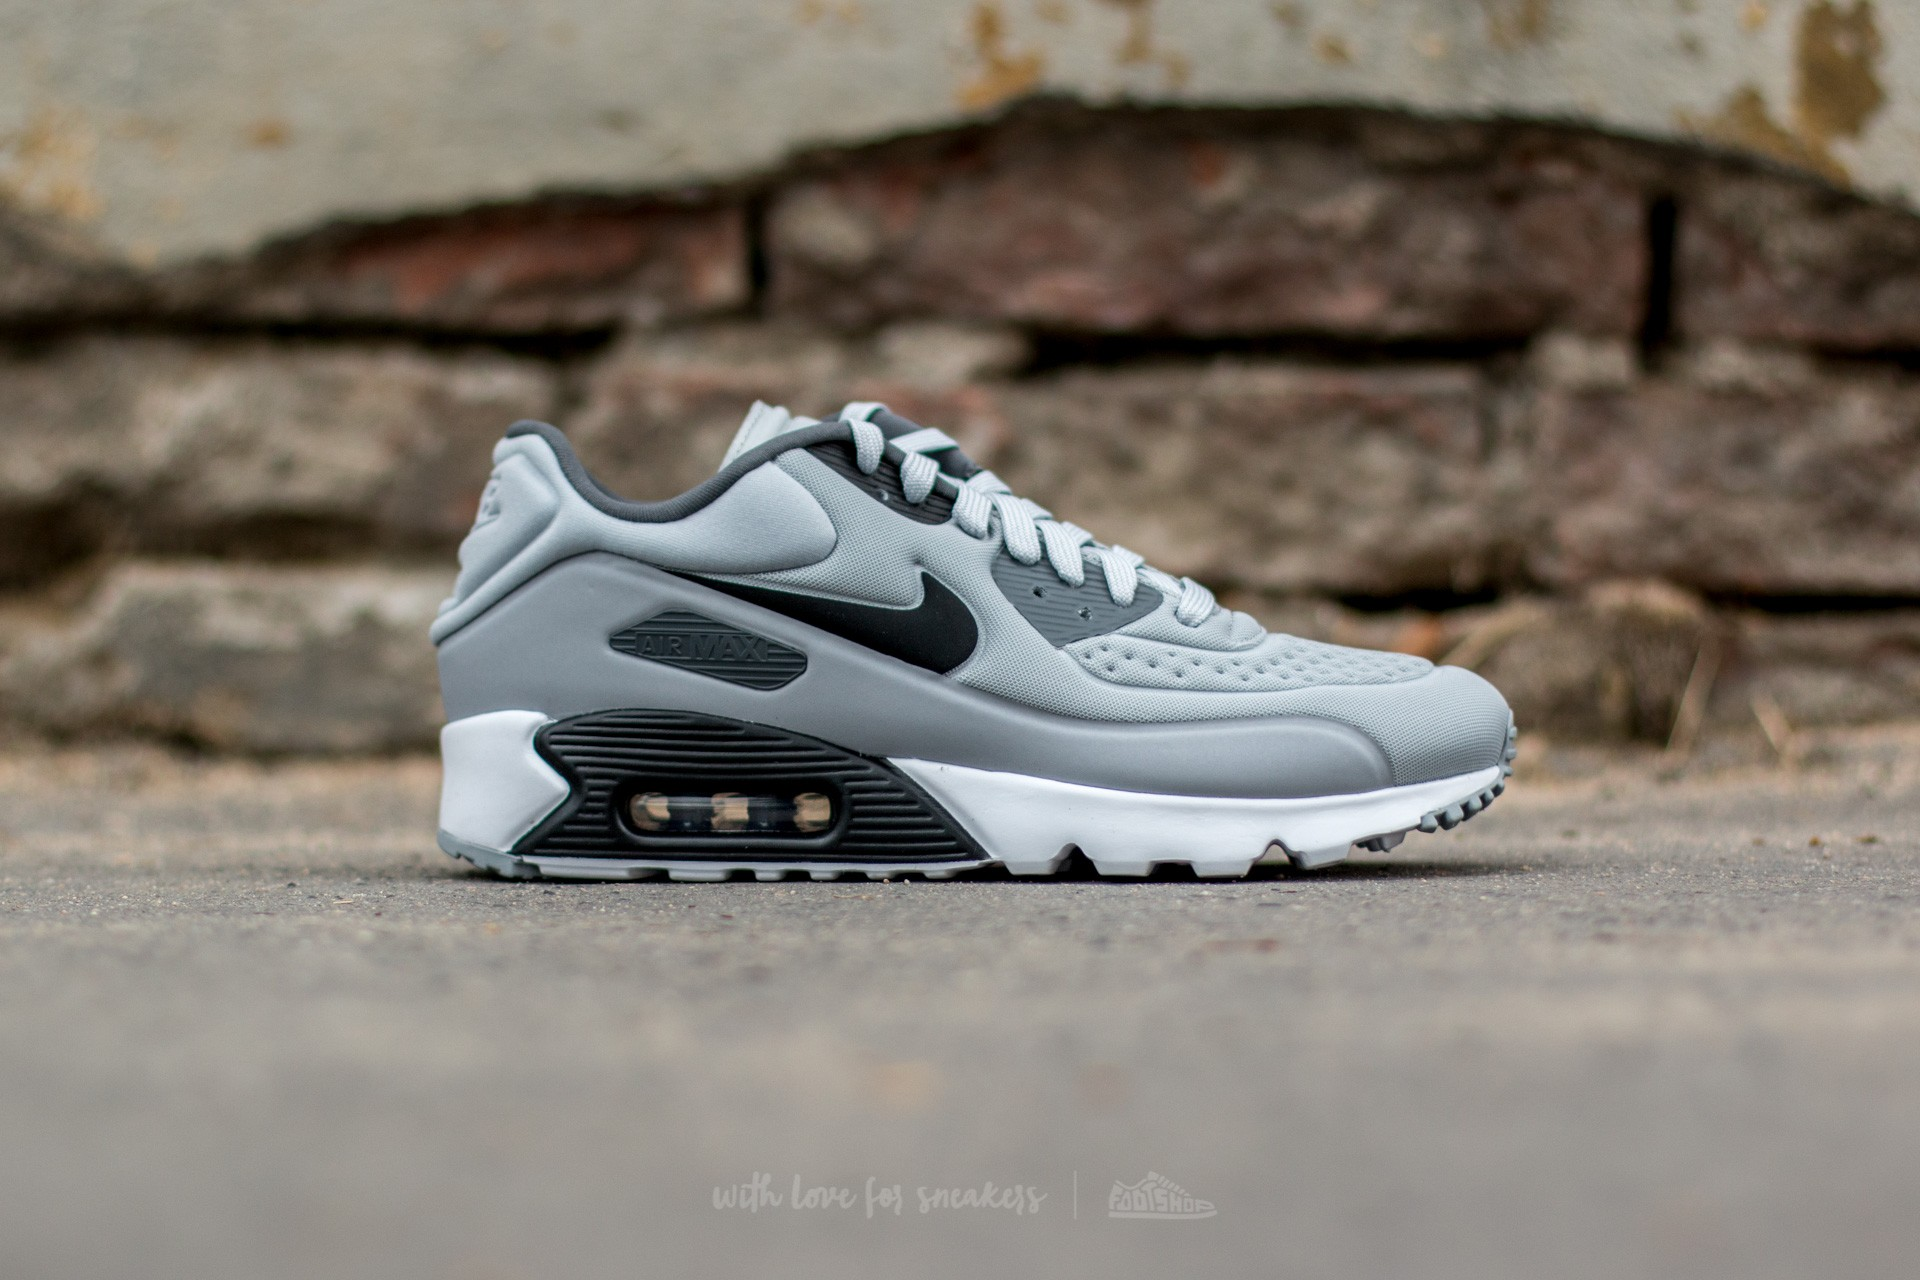 Wolf Grey Colors The Next Nike Air Max 90 Ultra SE